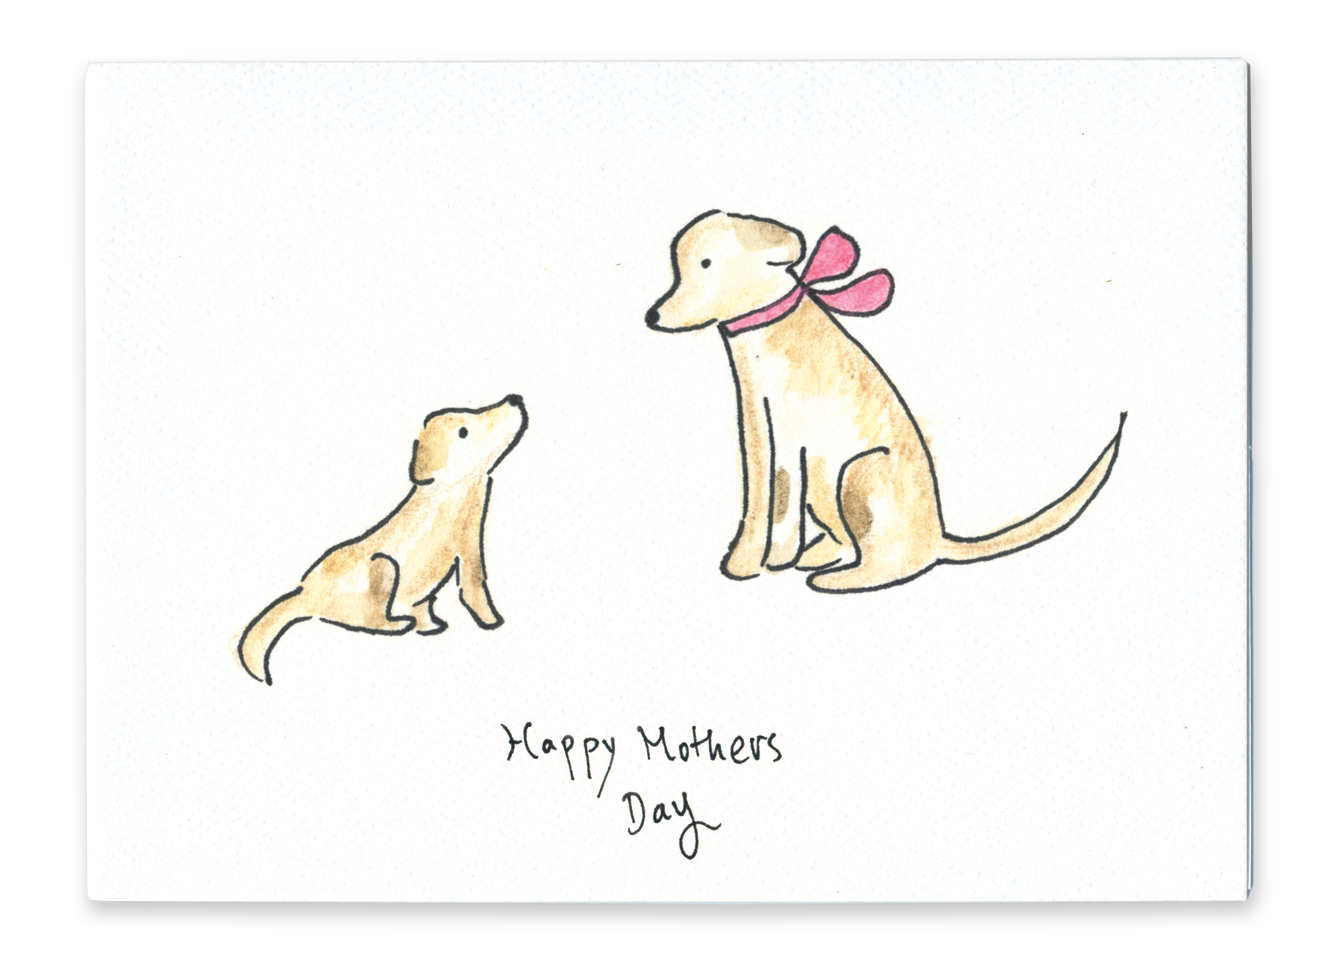 Happy Mothers Day (Dogs)